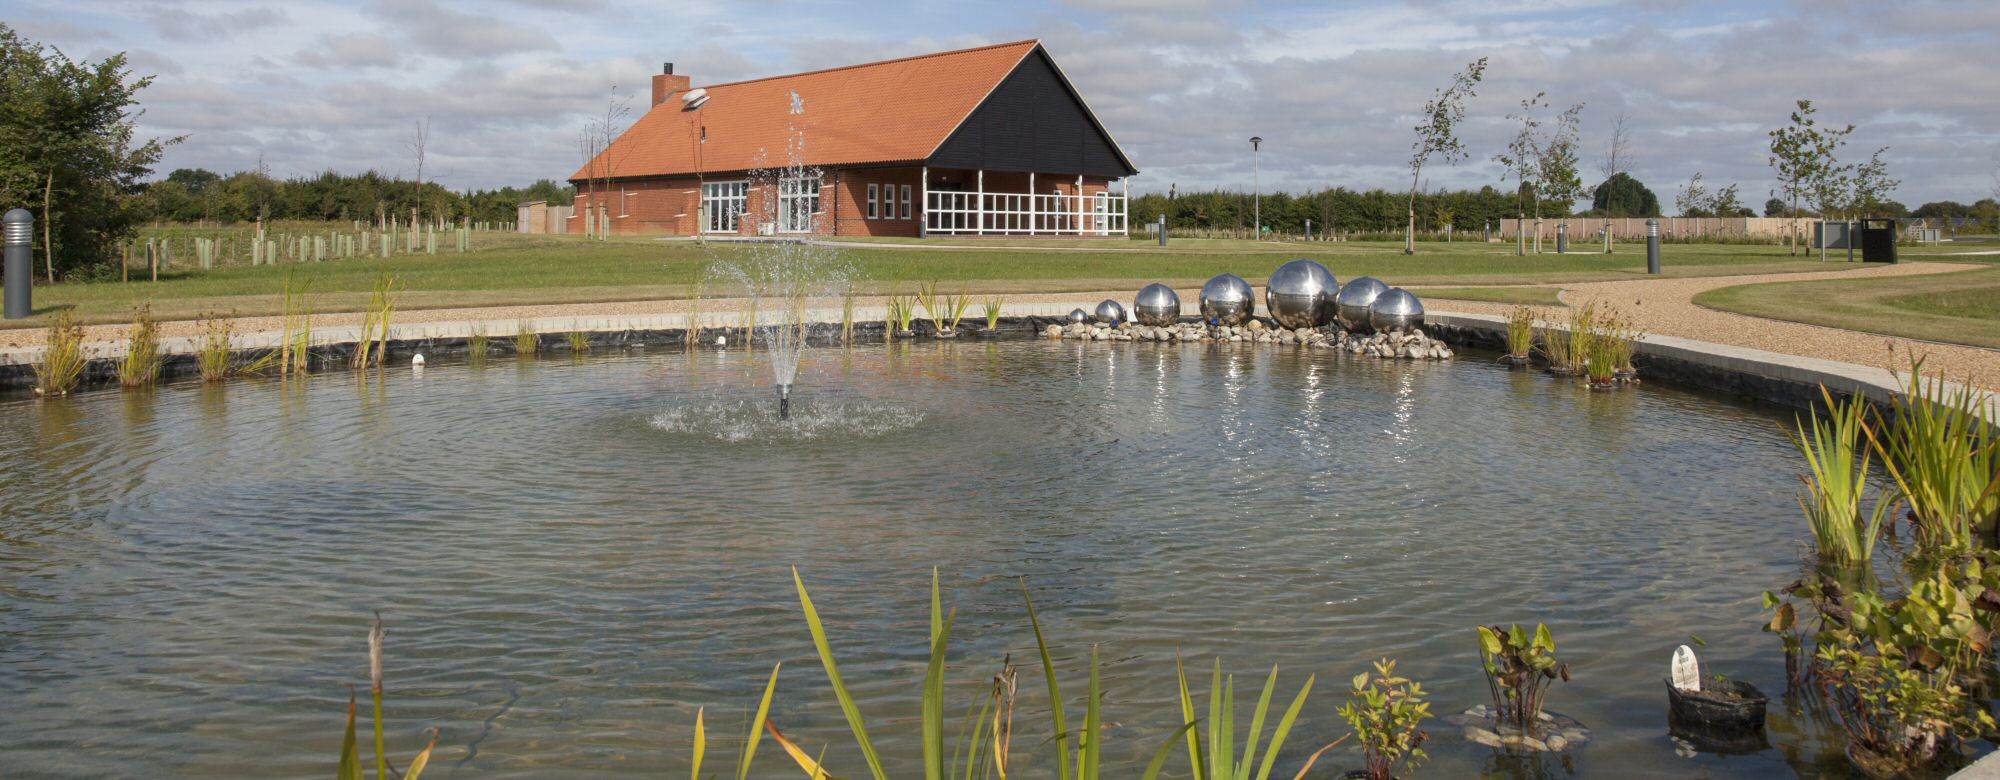 Waveney Memorial Park and Crematorium